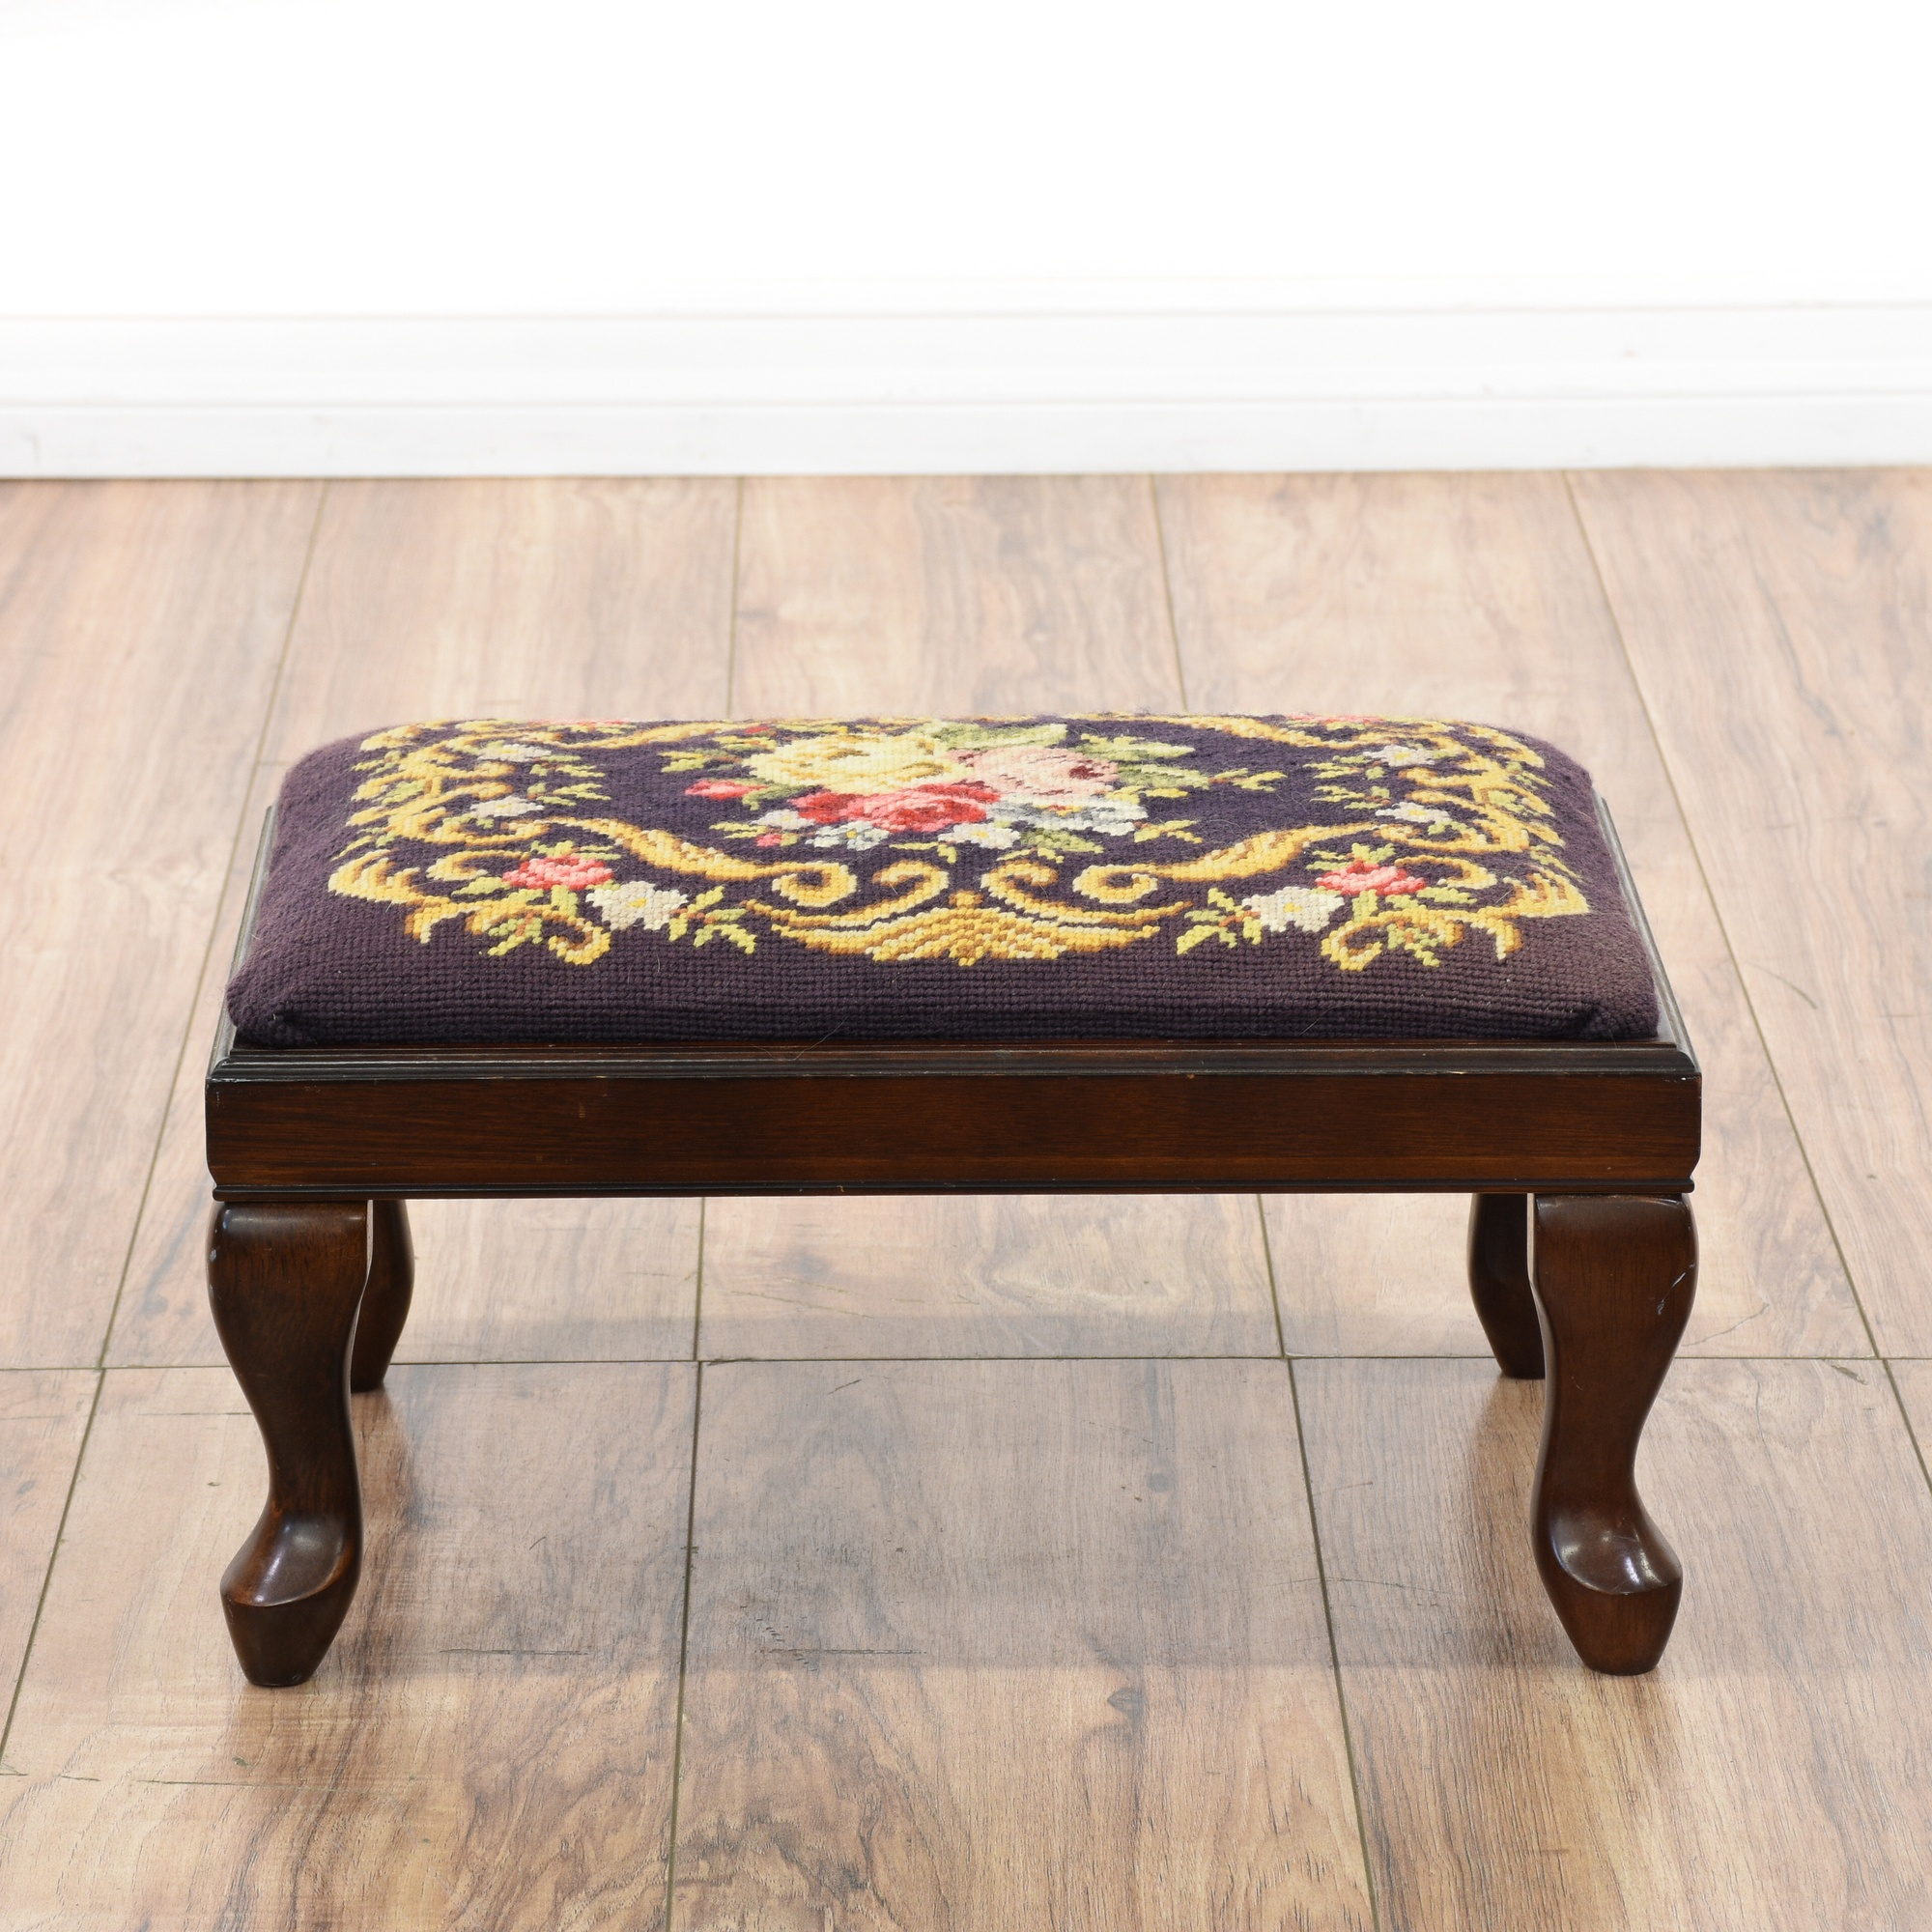 Bombay Embroidered Floral Needlepoint Footstool